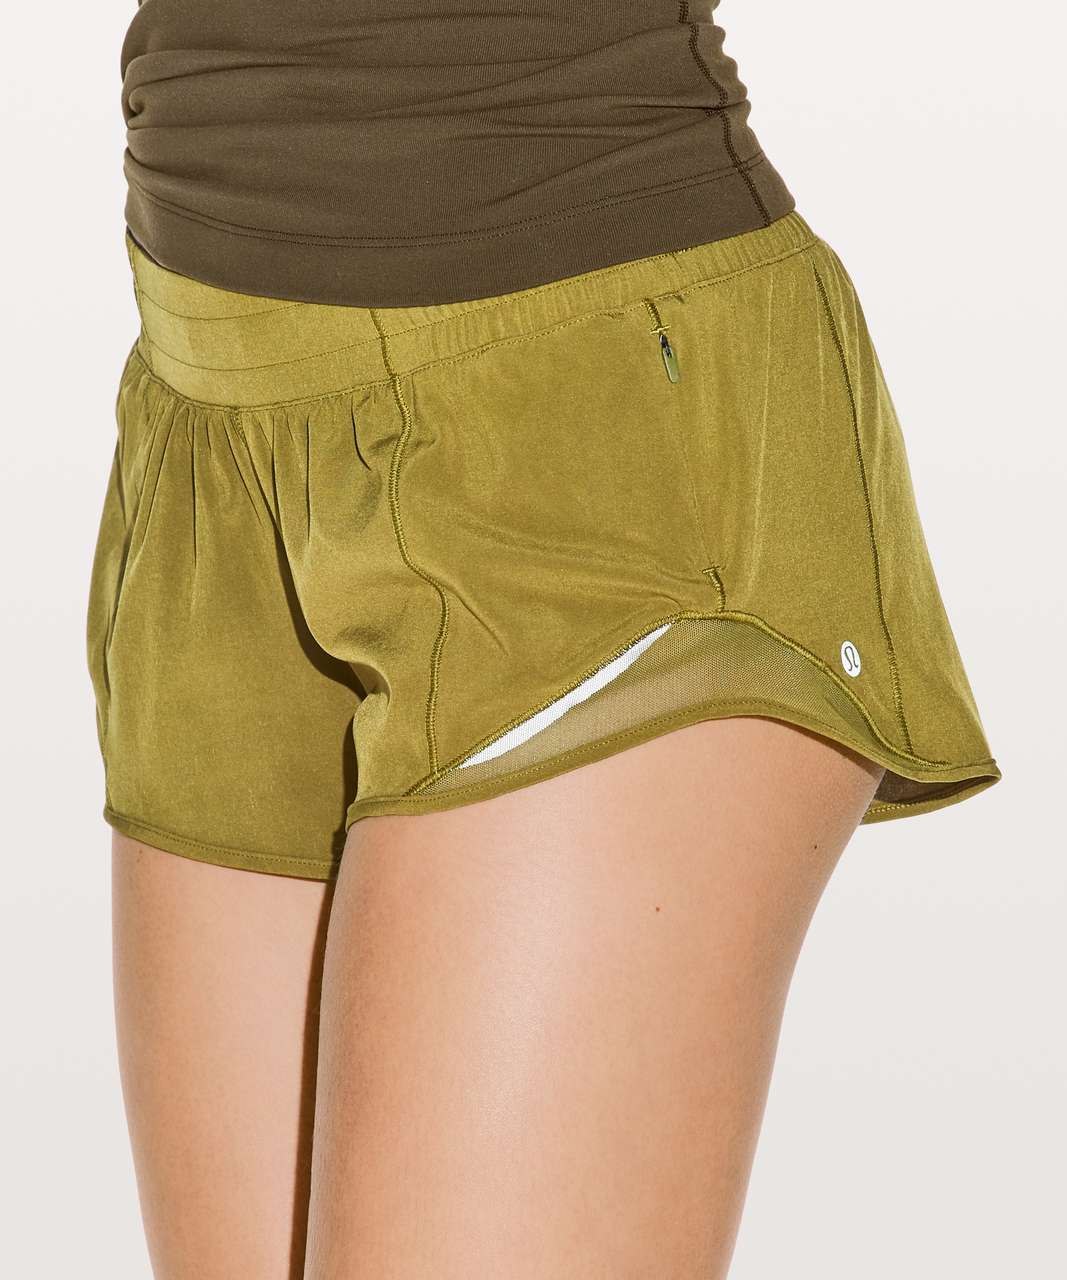 "Lululemon Hotty Hot Short II (2.5"") - Meadow"